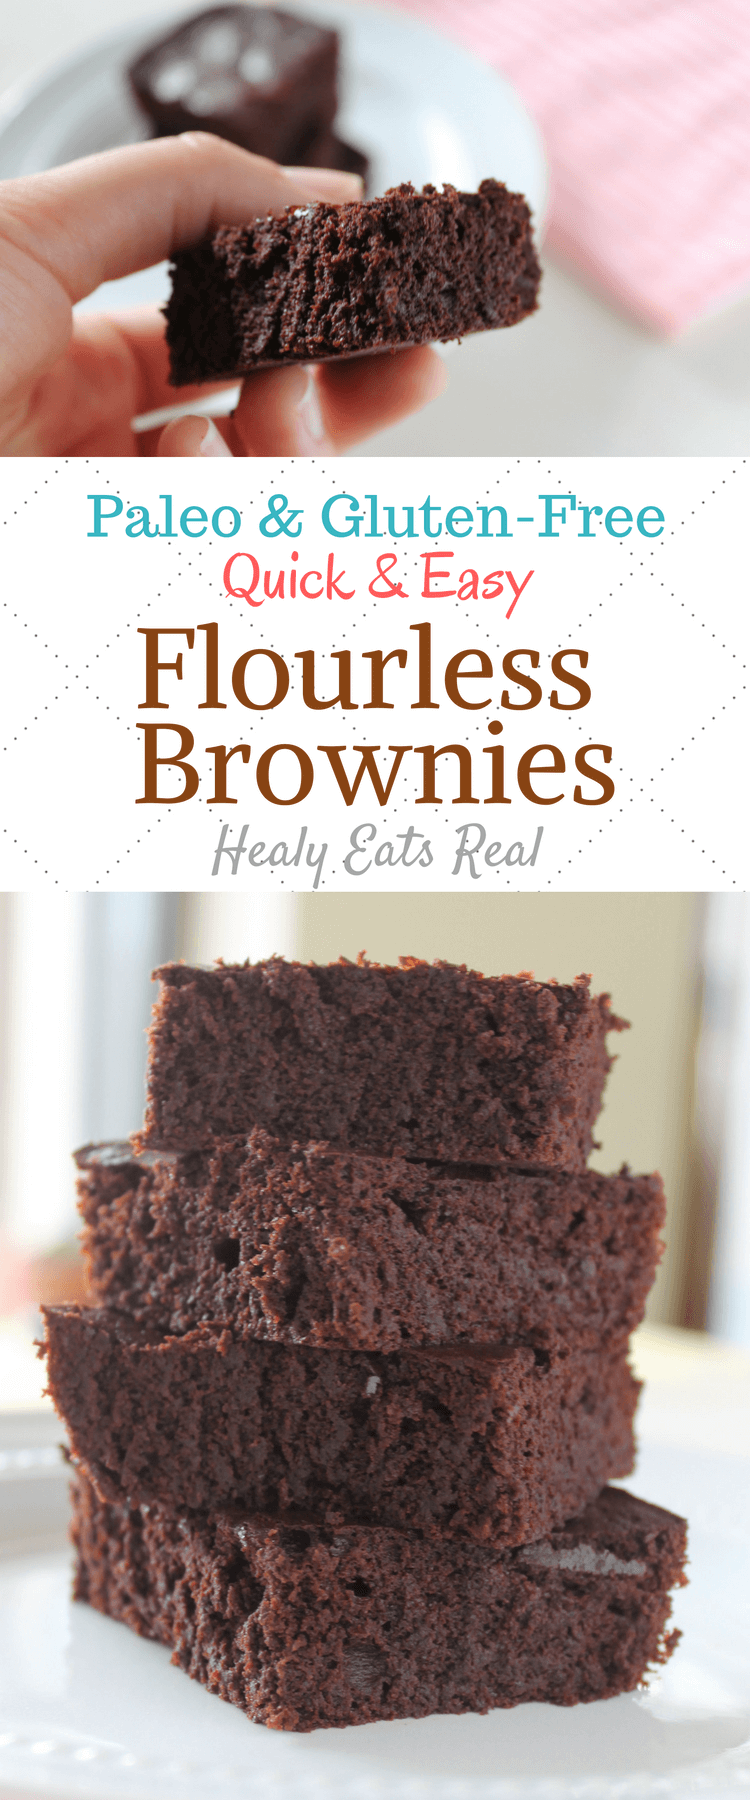 Amazing Healthy Flourless Brownies (Keto, Paleo, Gluten-Free)